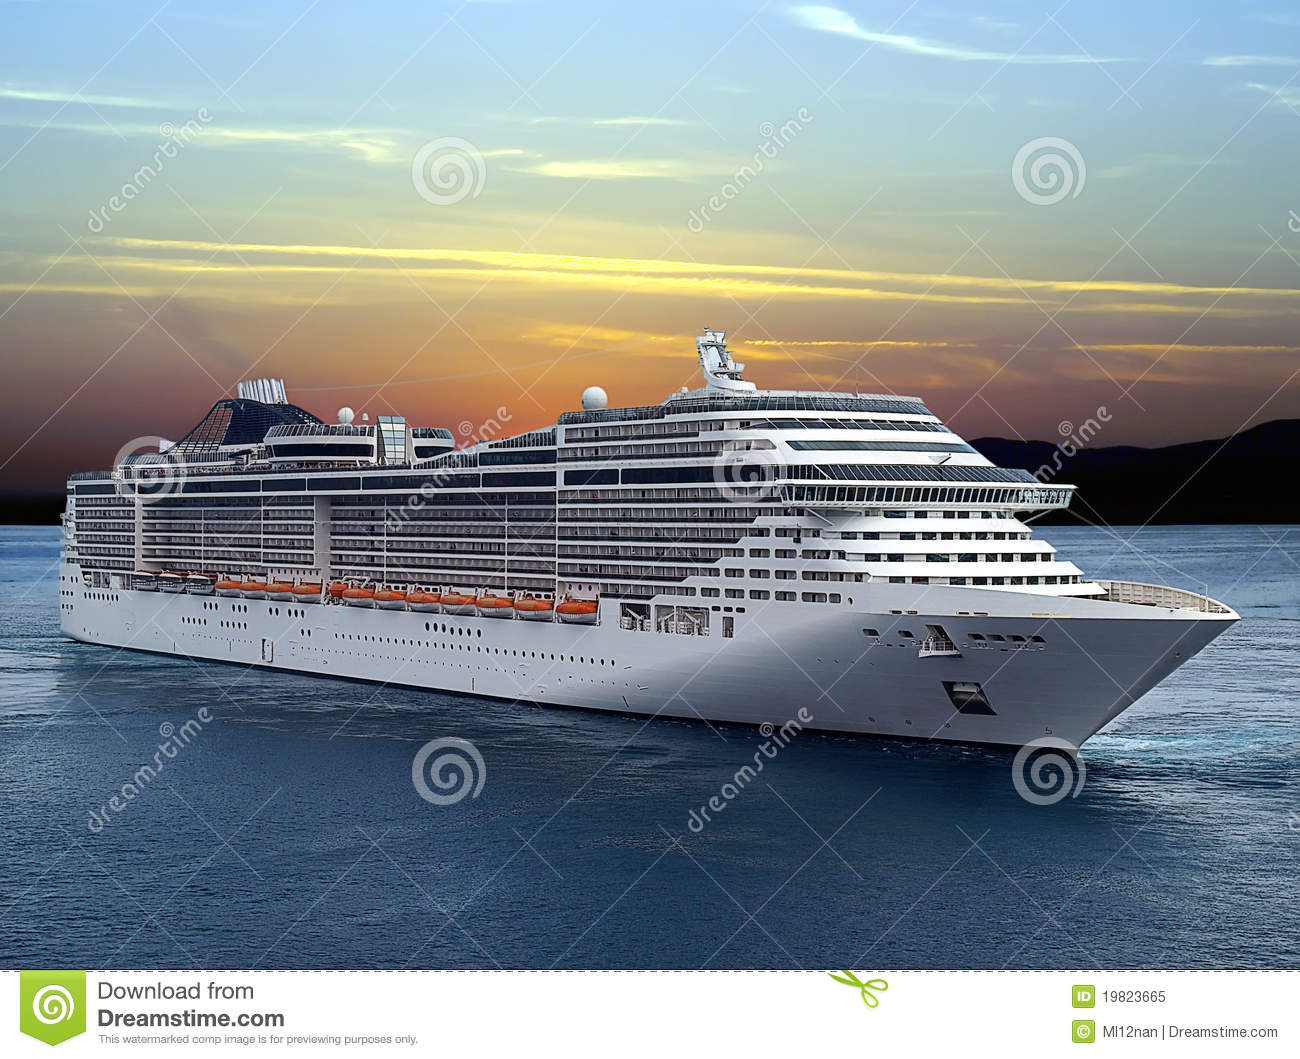 Download Cruise ship stock image. Image of tour, tourism, summer - 19823665